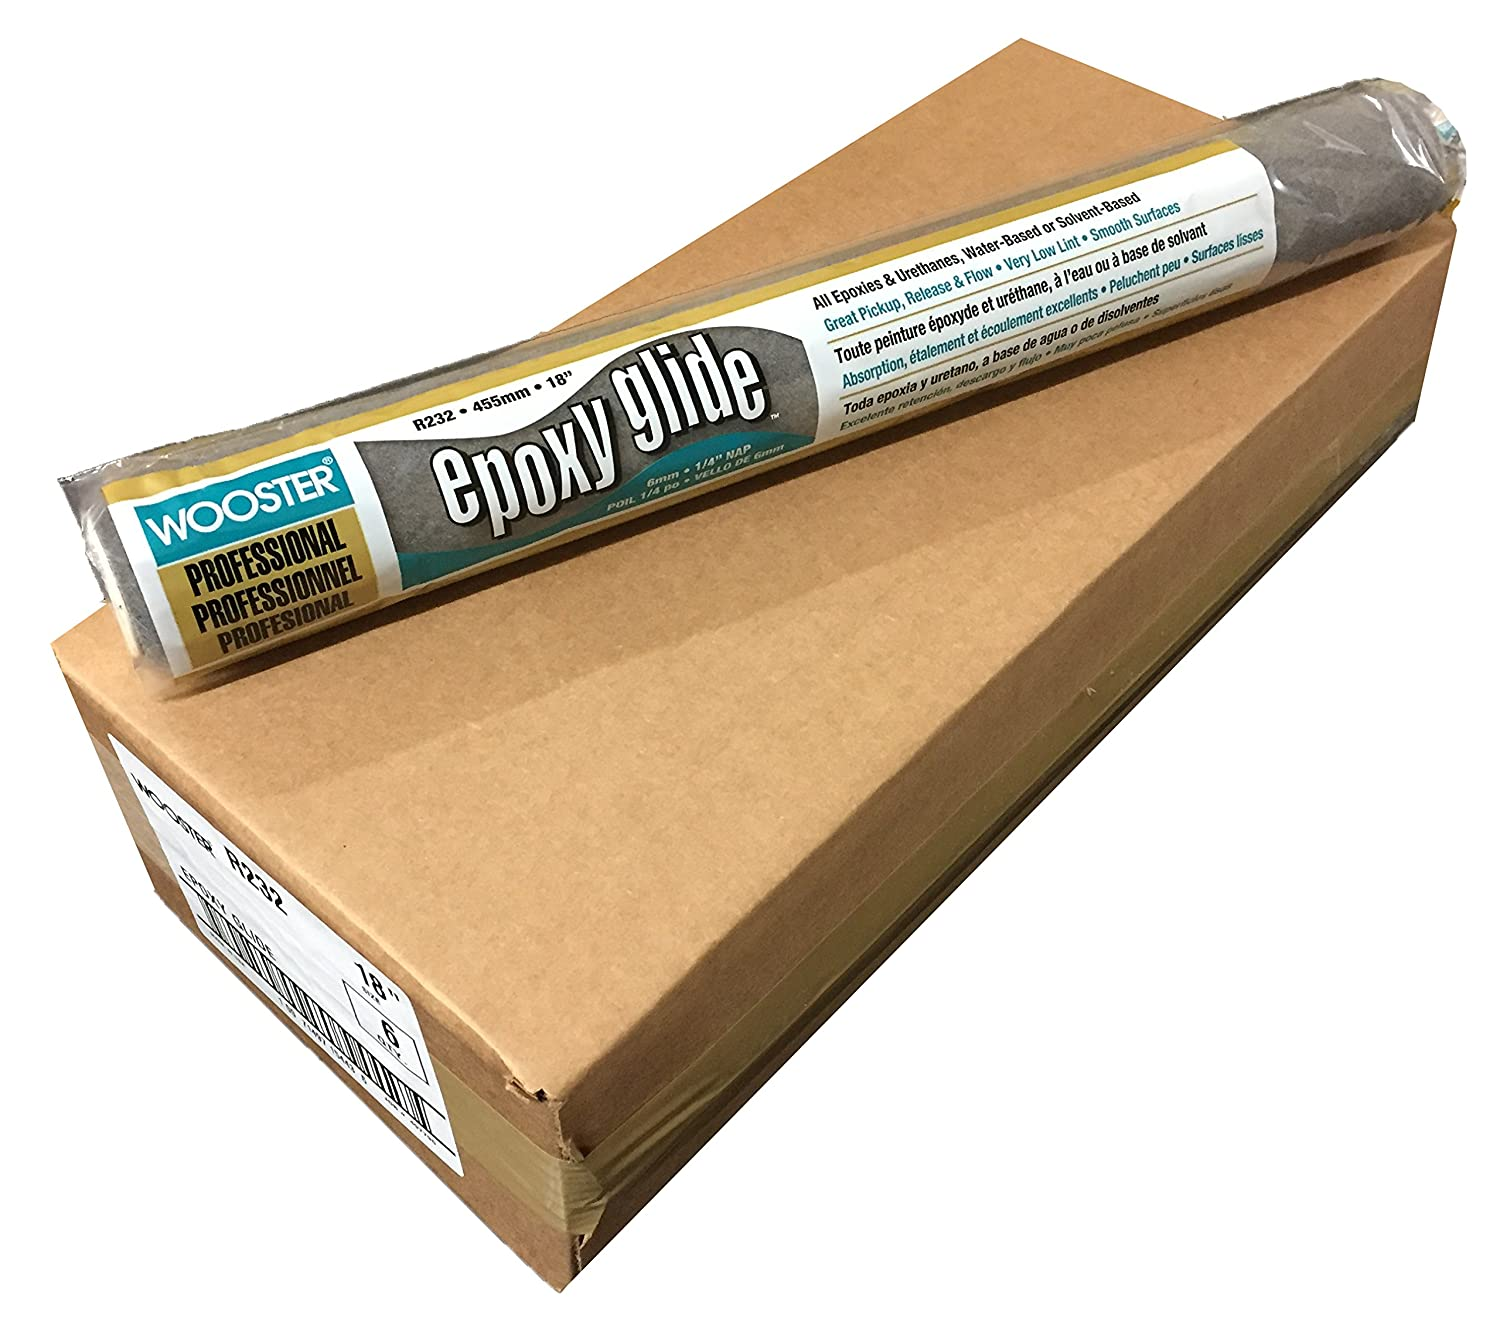 Wooster Brush R232-18 1/4-Inch Nap Epoxy Glide Roller Cover, Pack of 6 R232-18-1/4